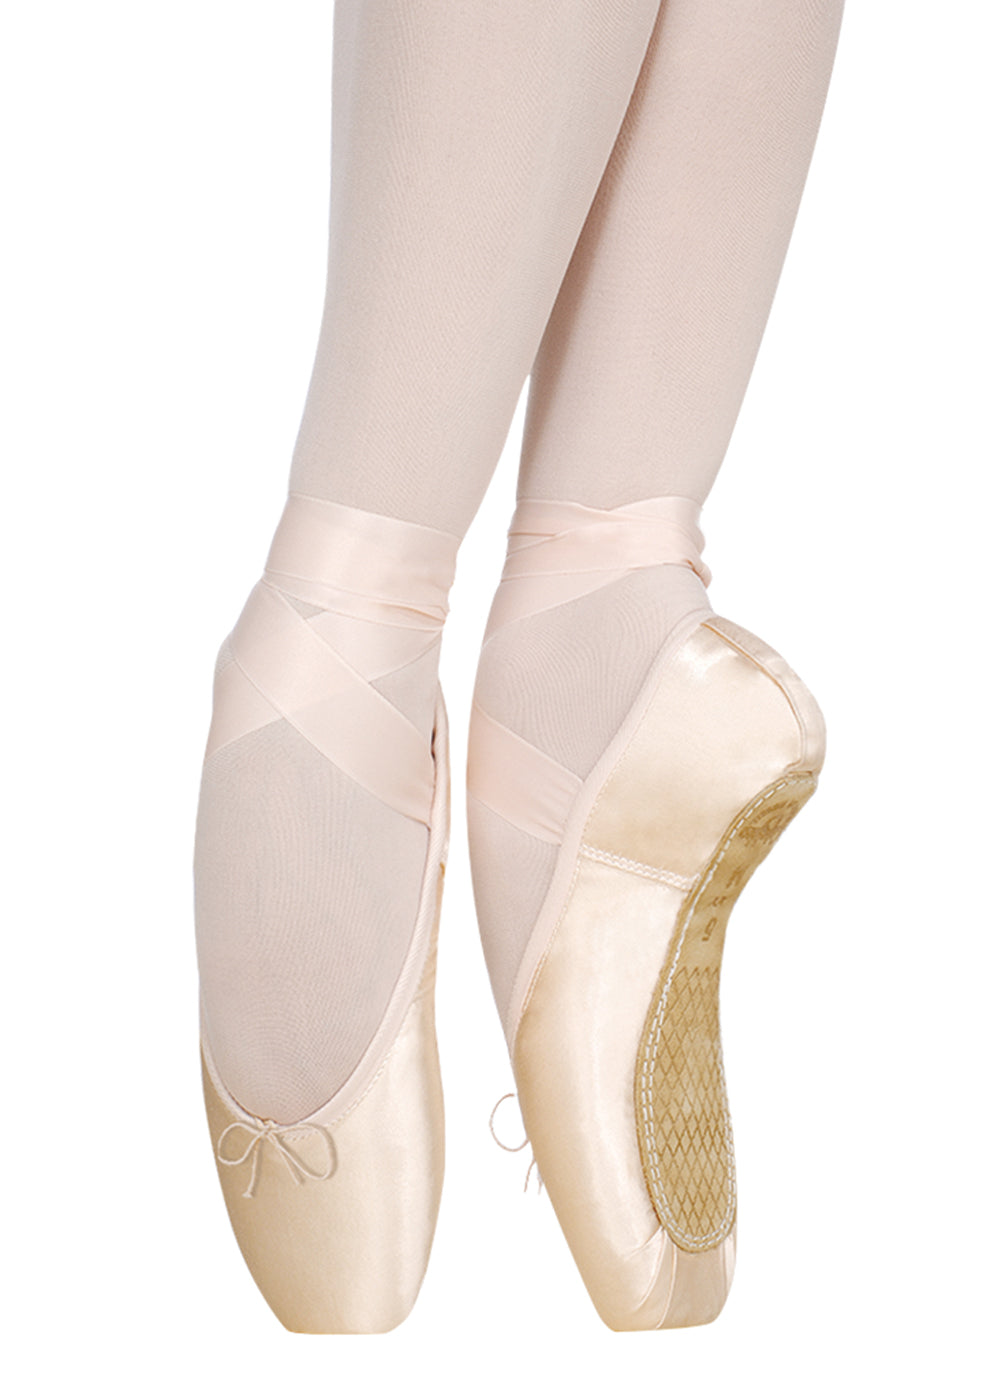 Miracle Pointe Shoe - Light Medium